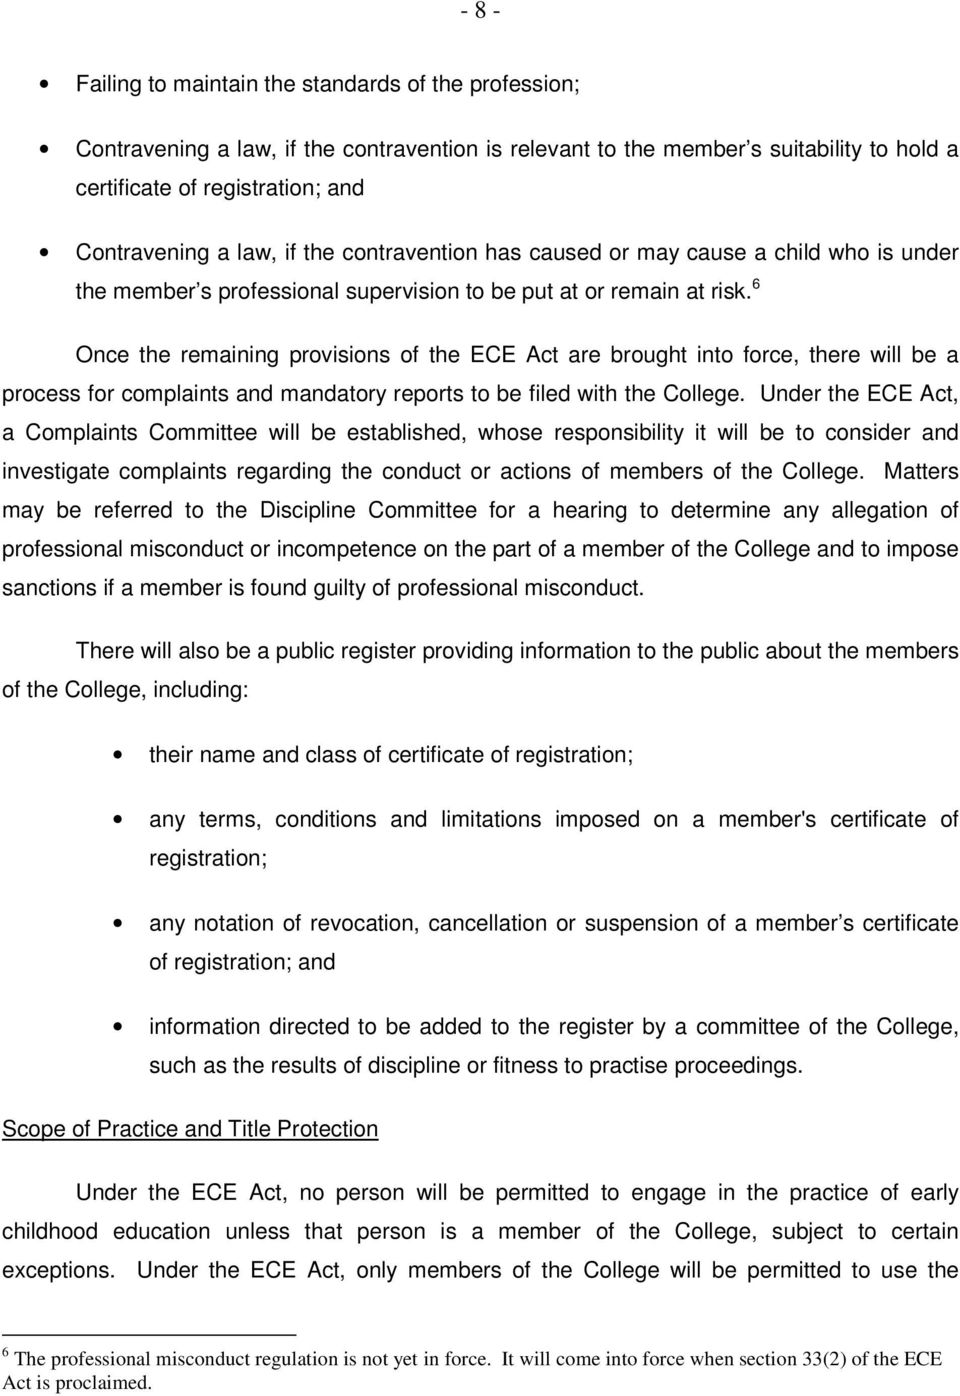 6 Once the remaining provisions of the ECE Act are brought into force, there will be a process for complaints and mandatory reports to be filed with the College.